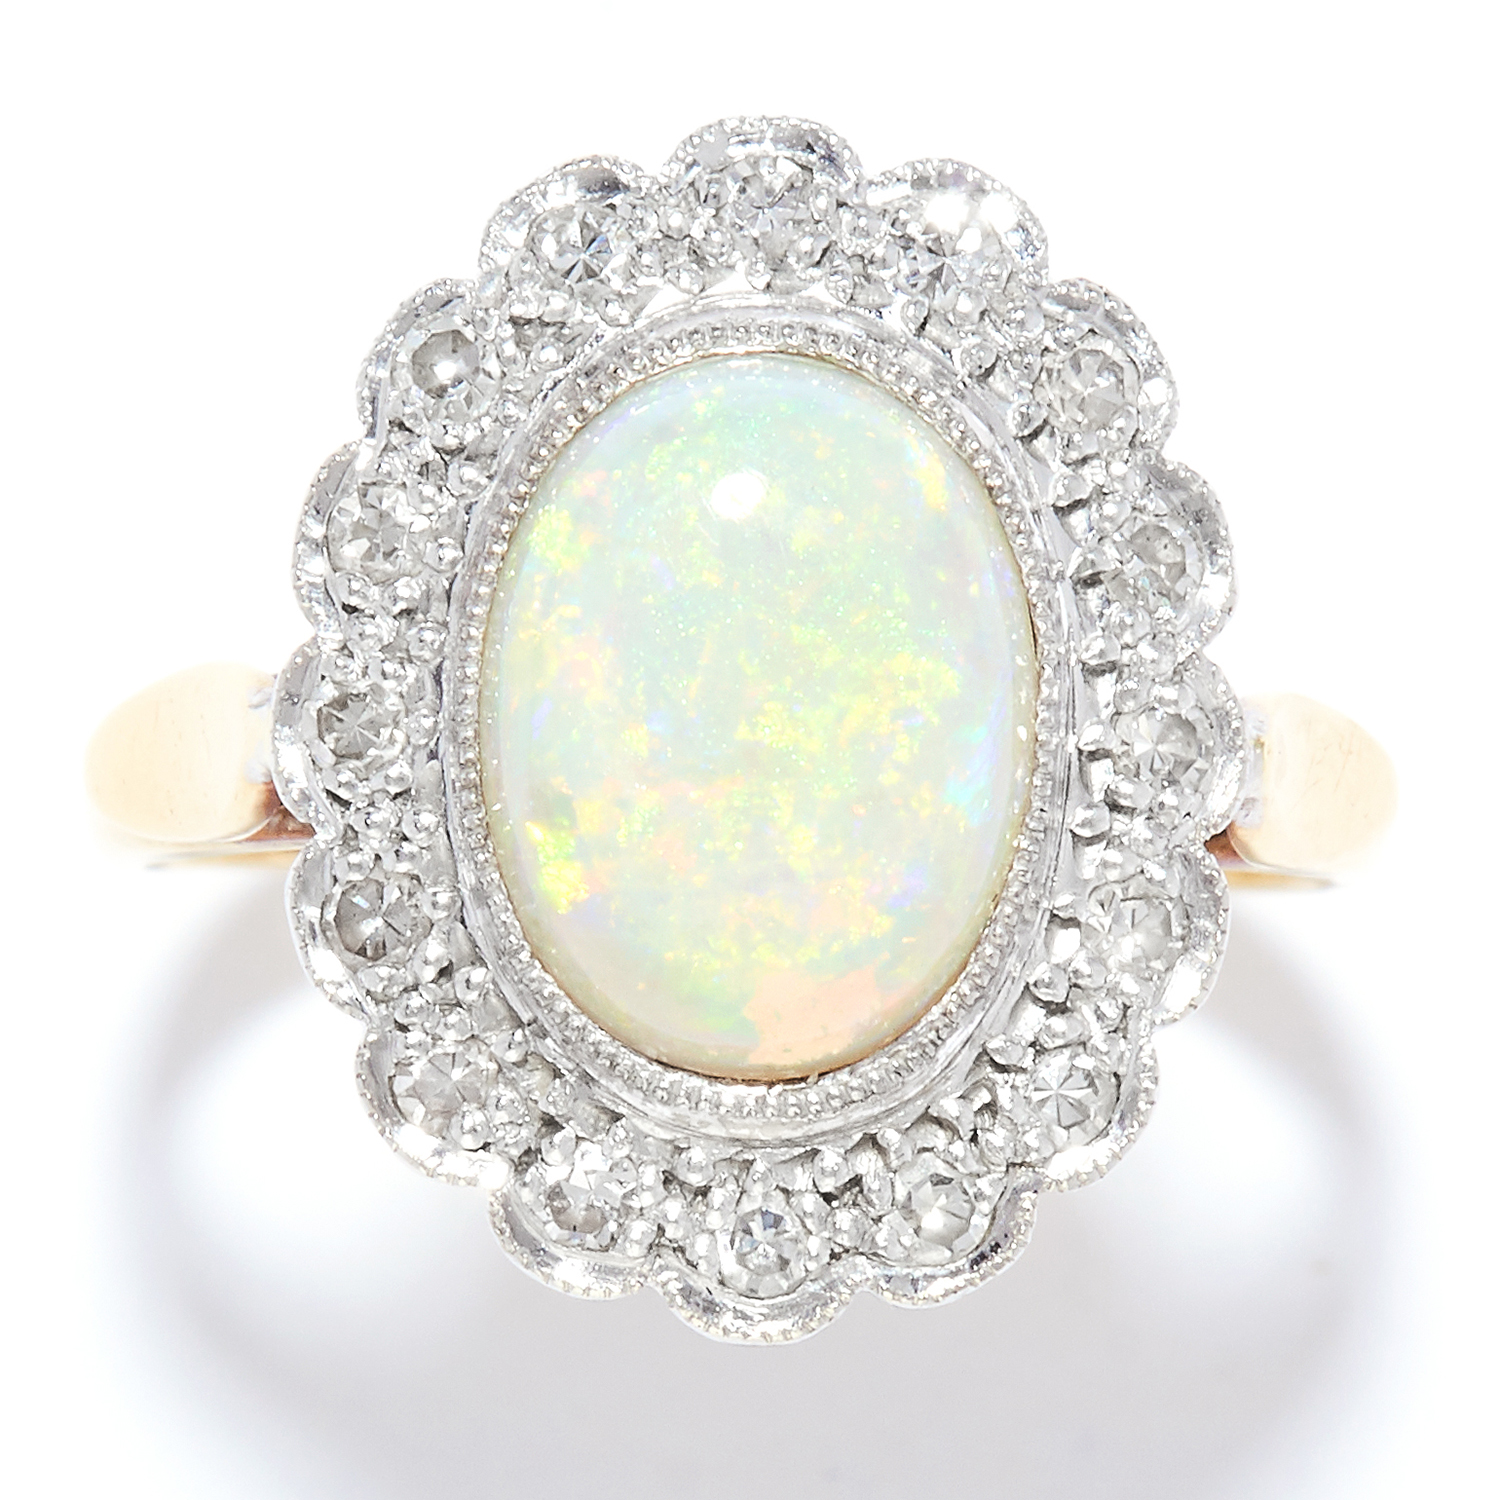 OPAL AND DIAMOND CLUSTER RING in yellow gold, set with a cabochon opal in a cluster of round cut